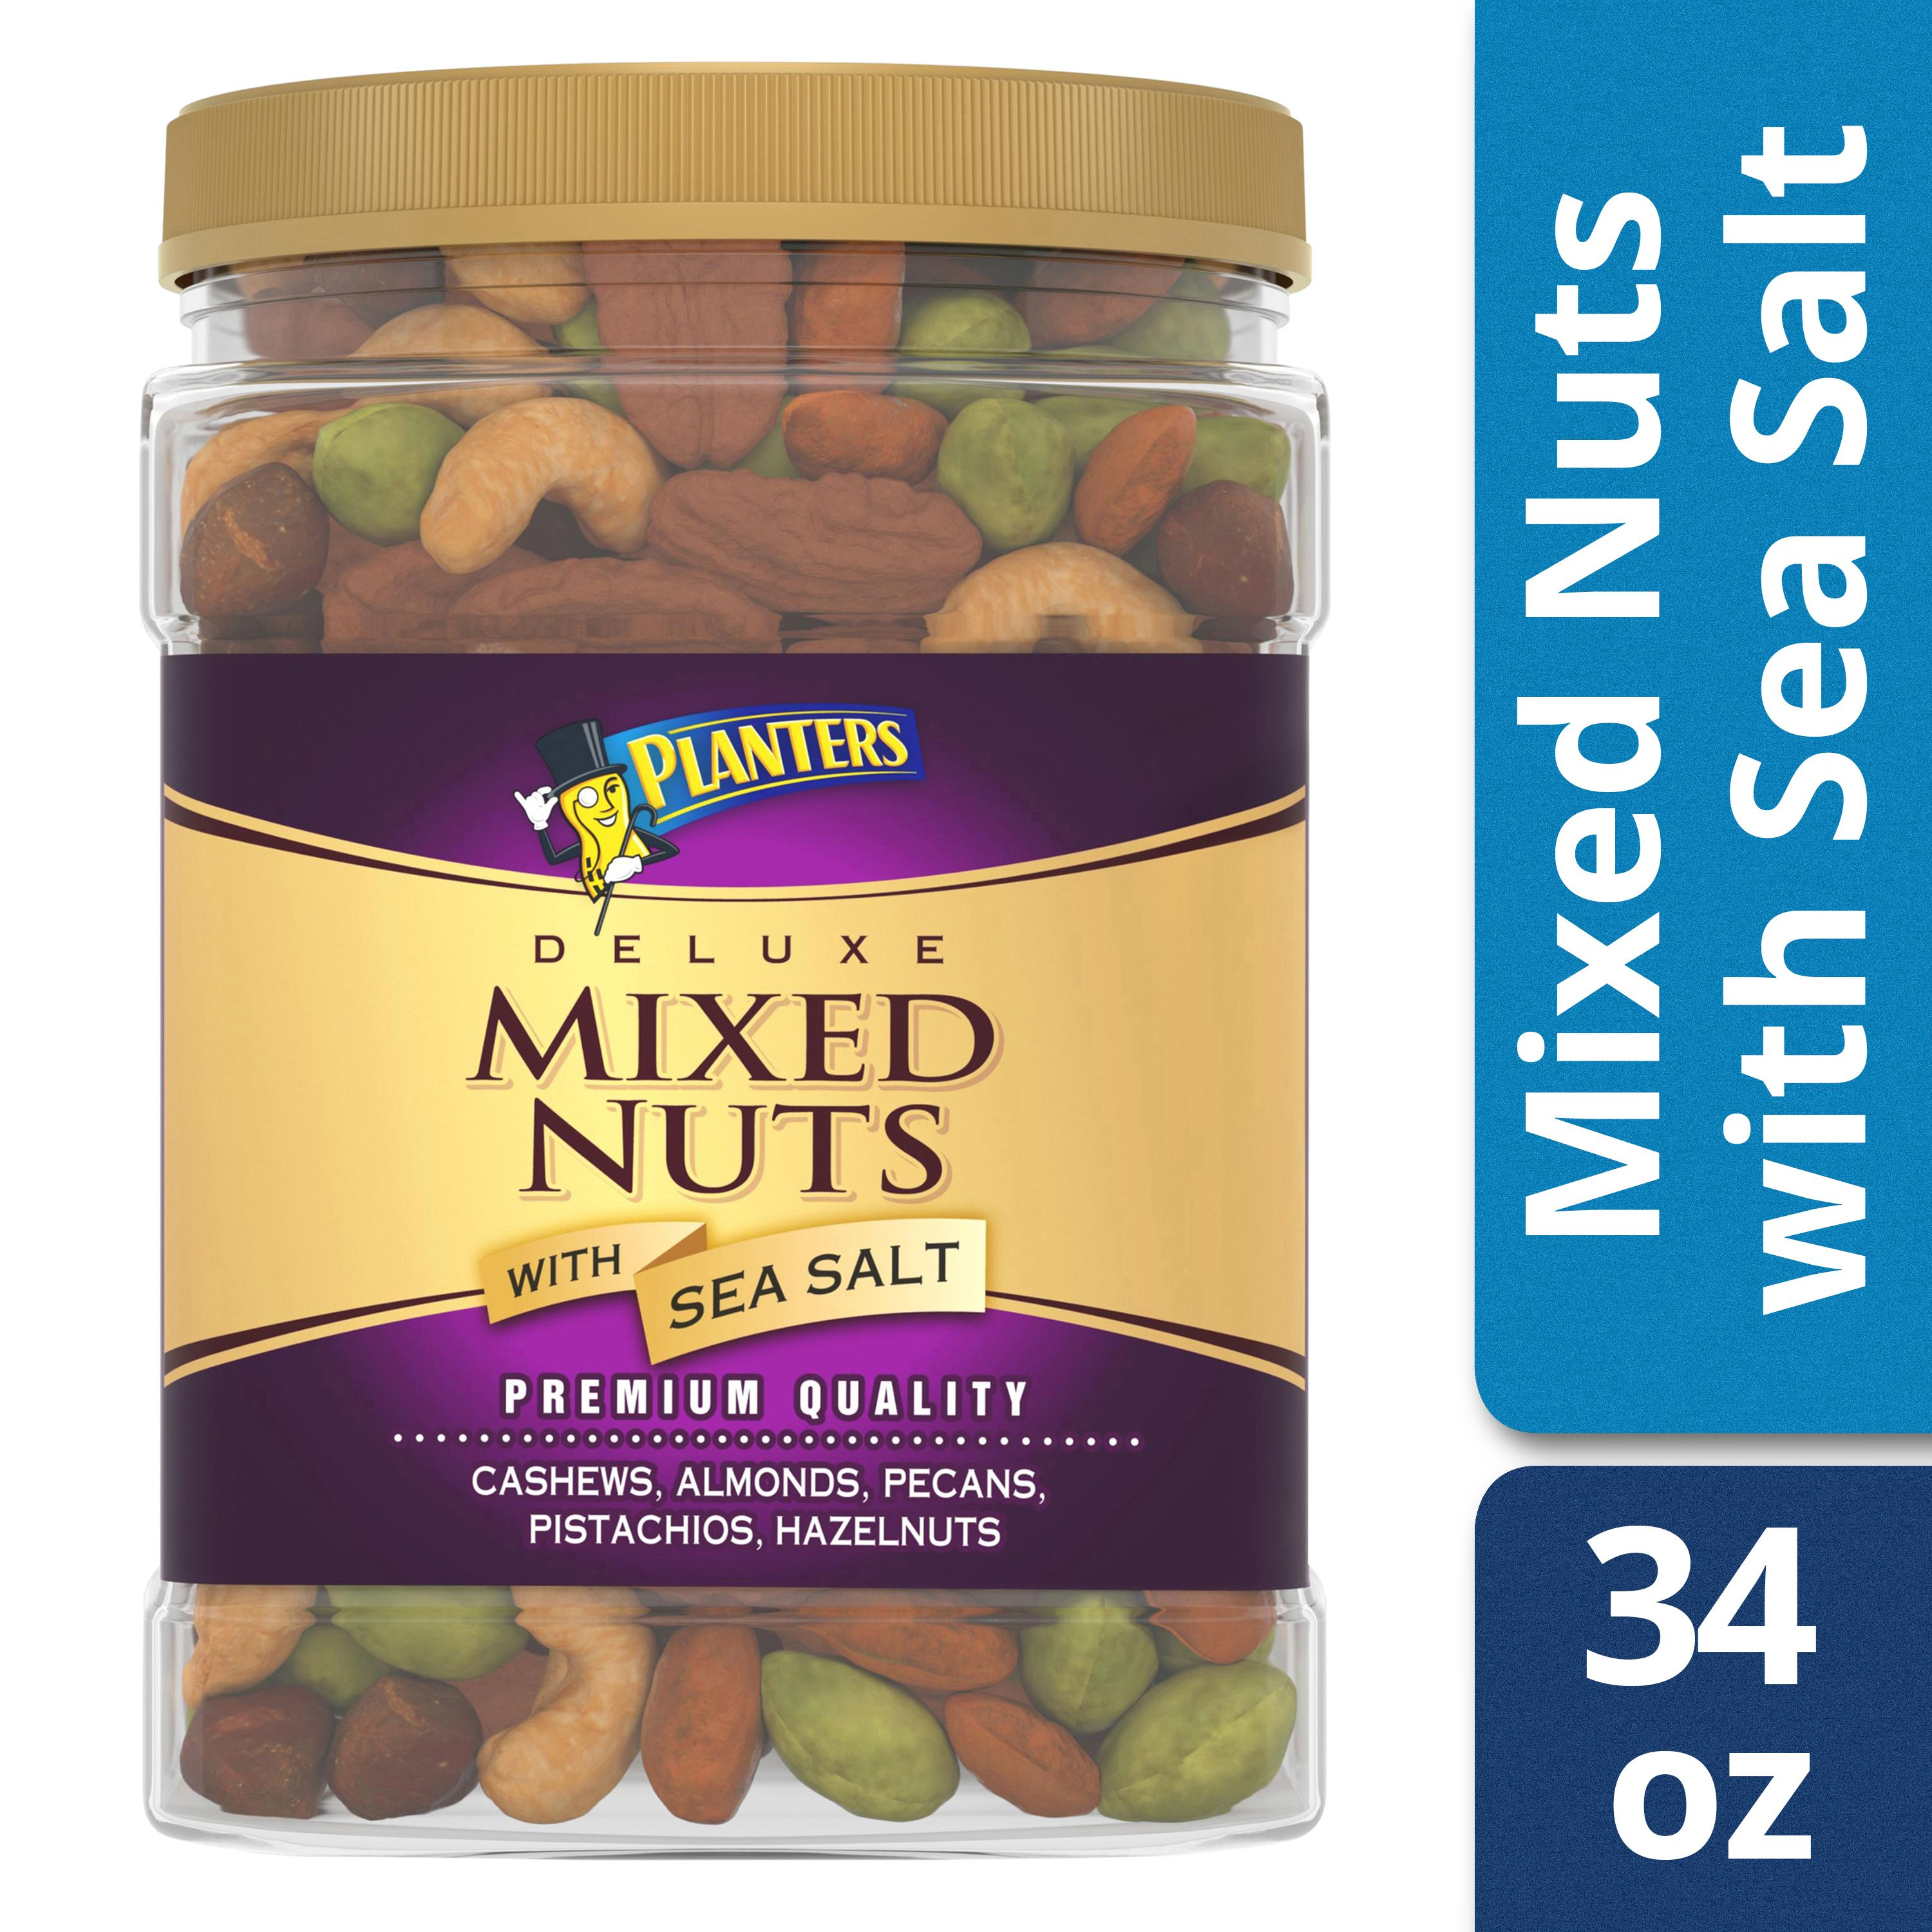 Planters Deluxe Mixed Nuts with Sea Salt 34 oz Jar